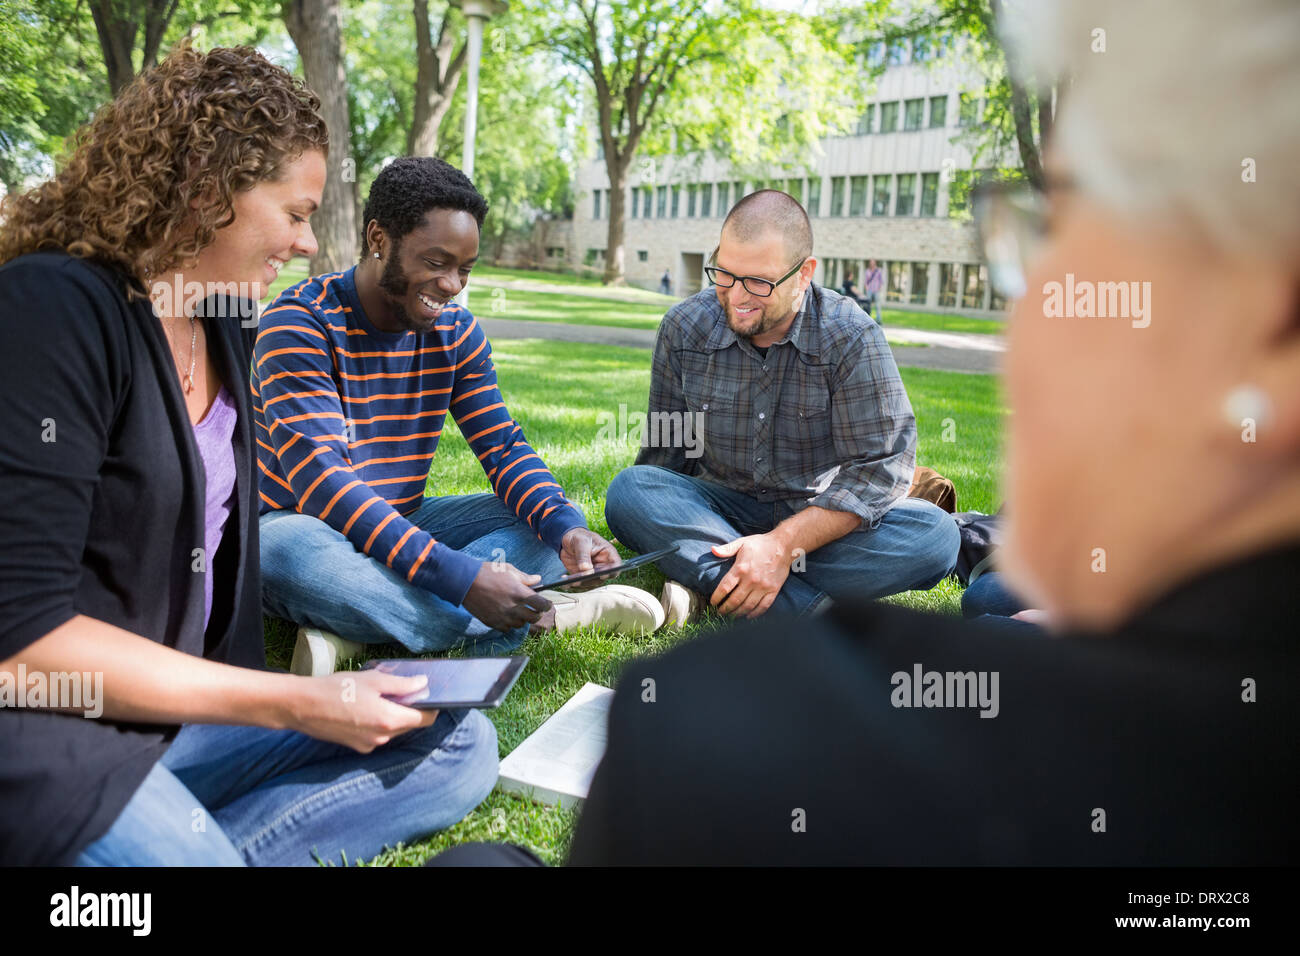 Group Of Students Using Digital Tablet On Campus - Stock Image